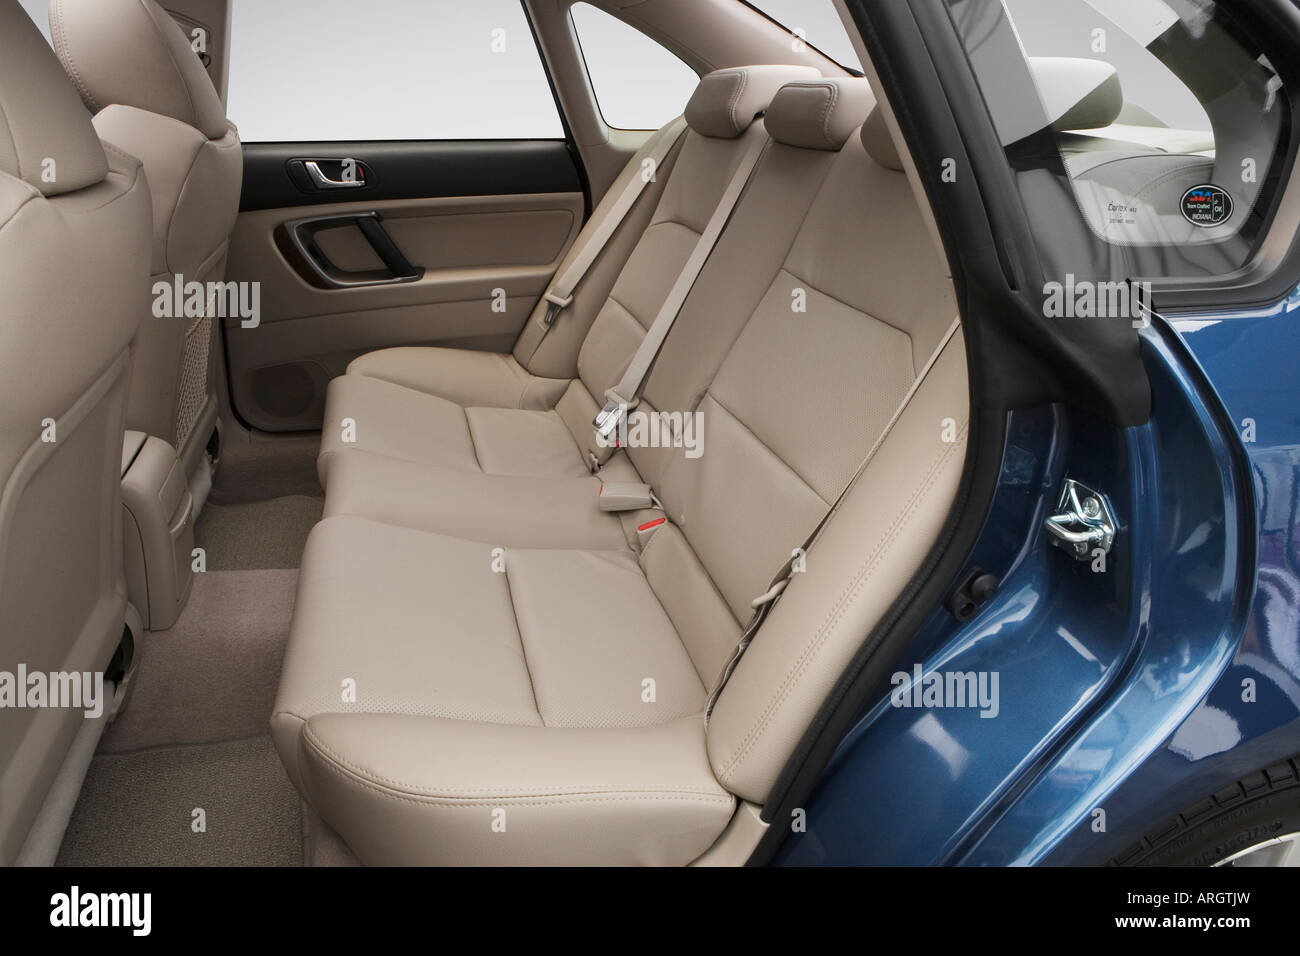 2008 subaru legacy 2 5 gt limited in blue rear seats stock photo royalty free image 16052064. Black Bedroom Furniture Sets. Home Design Ideas